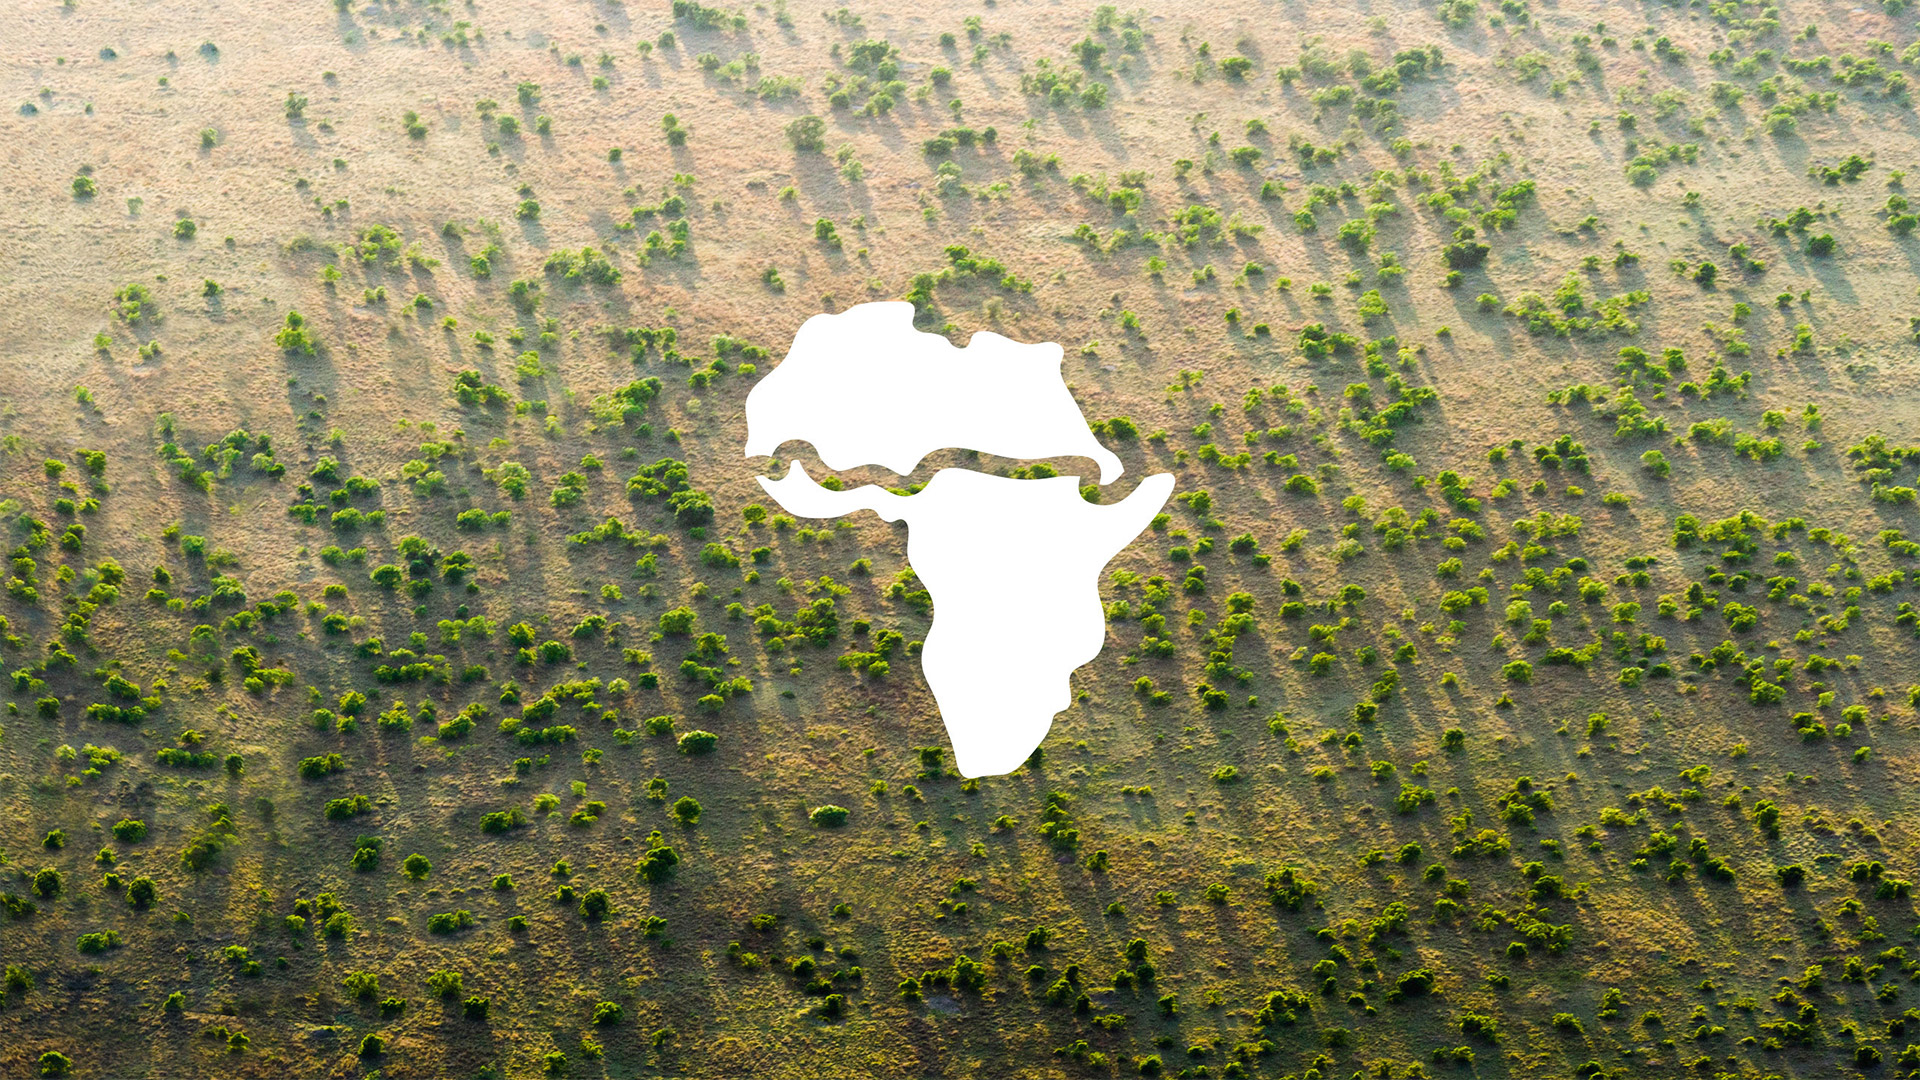 Africa's Great Green Wall